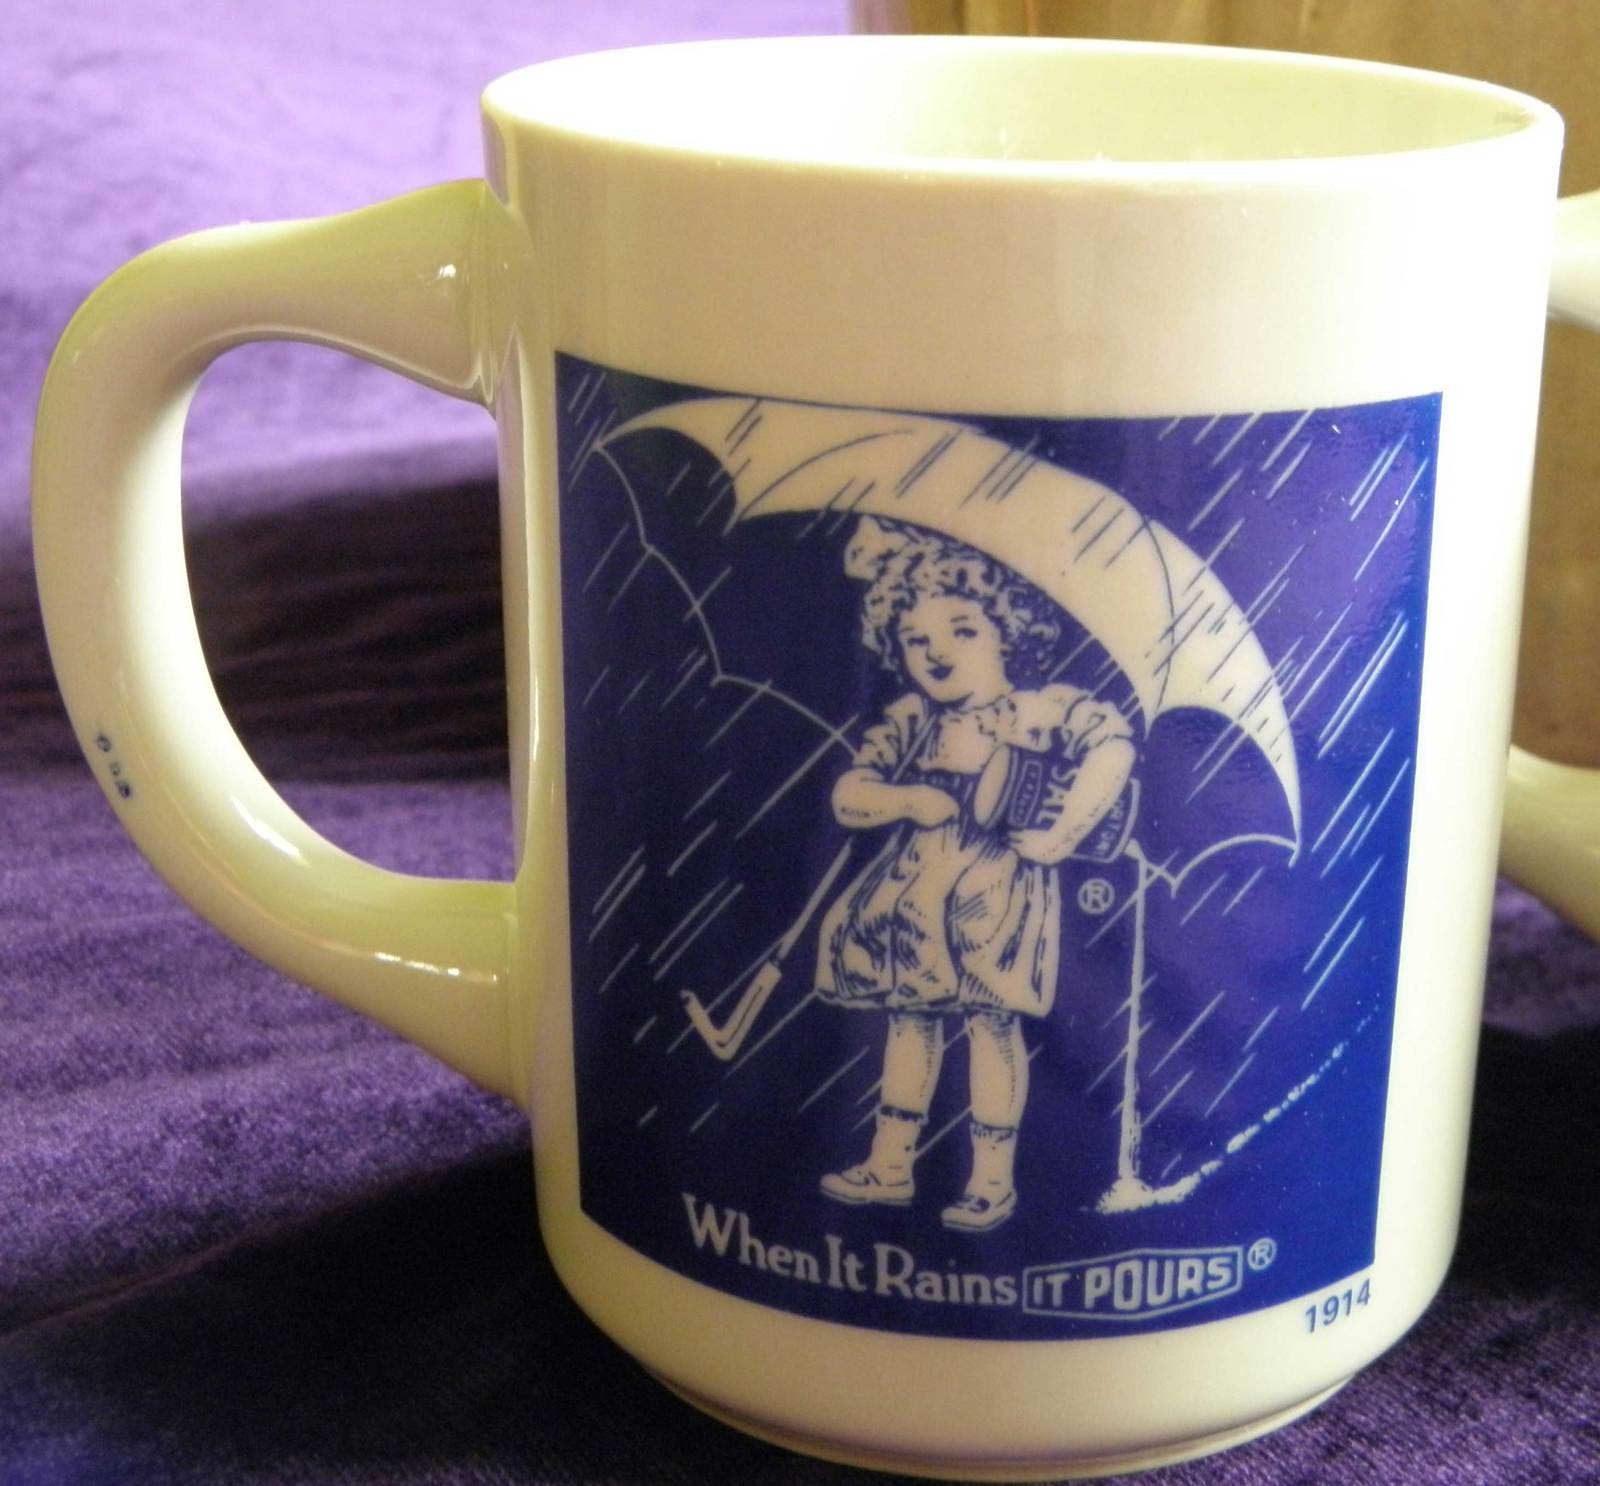 1980 Vintage Morton Salt Ceramic Coffee Cup/Mug set